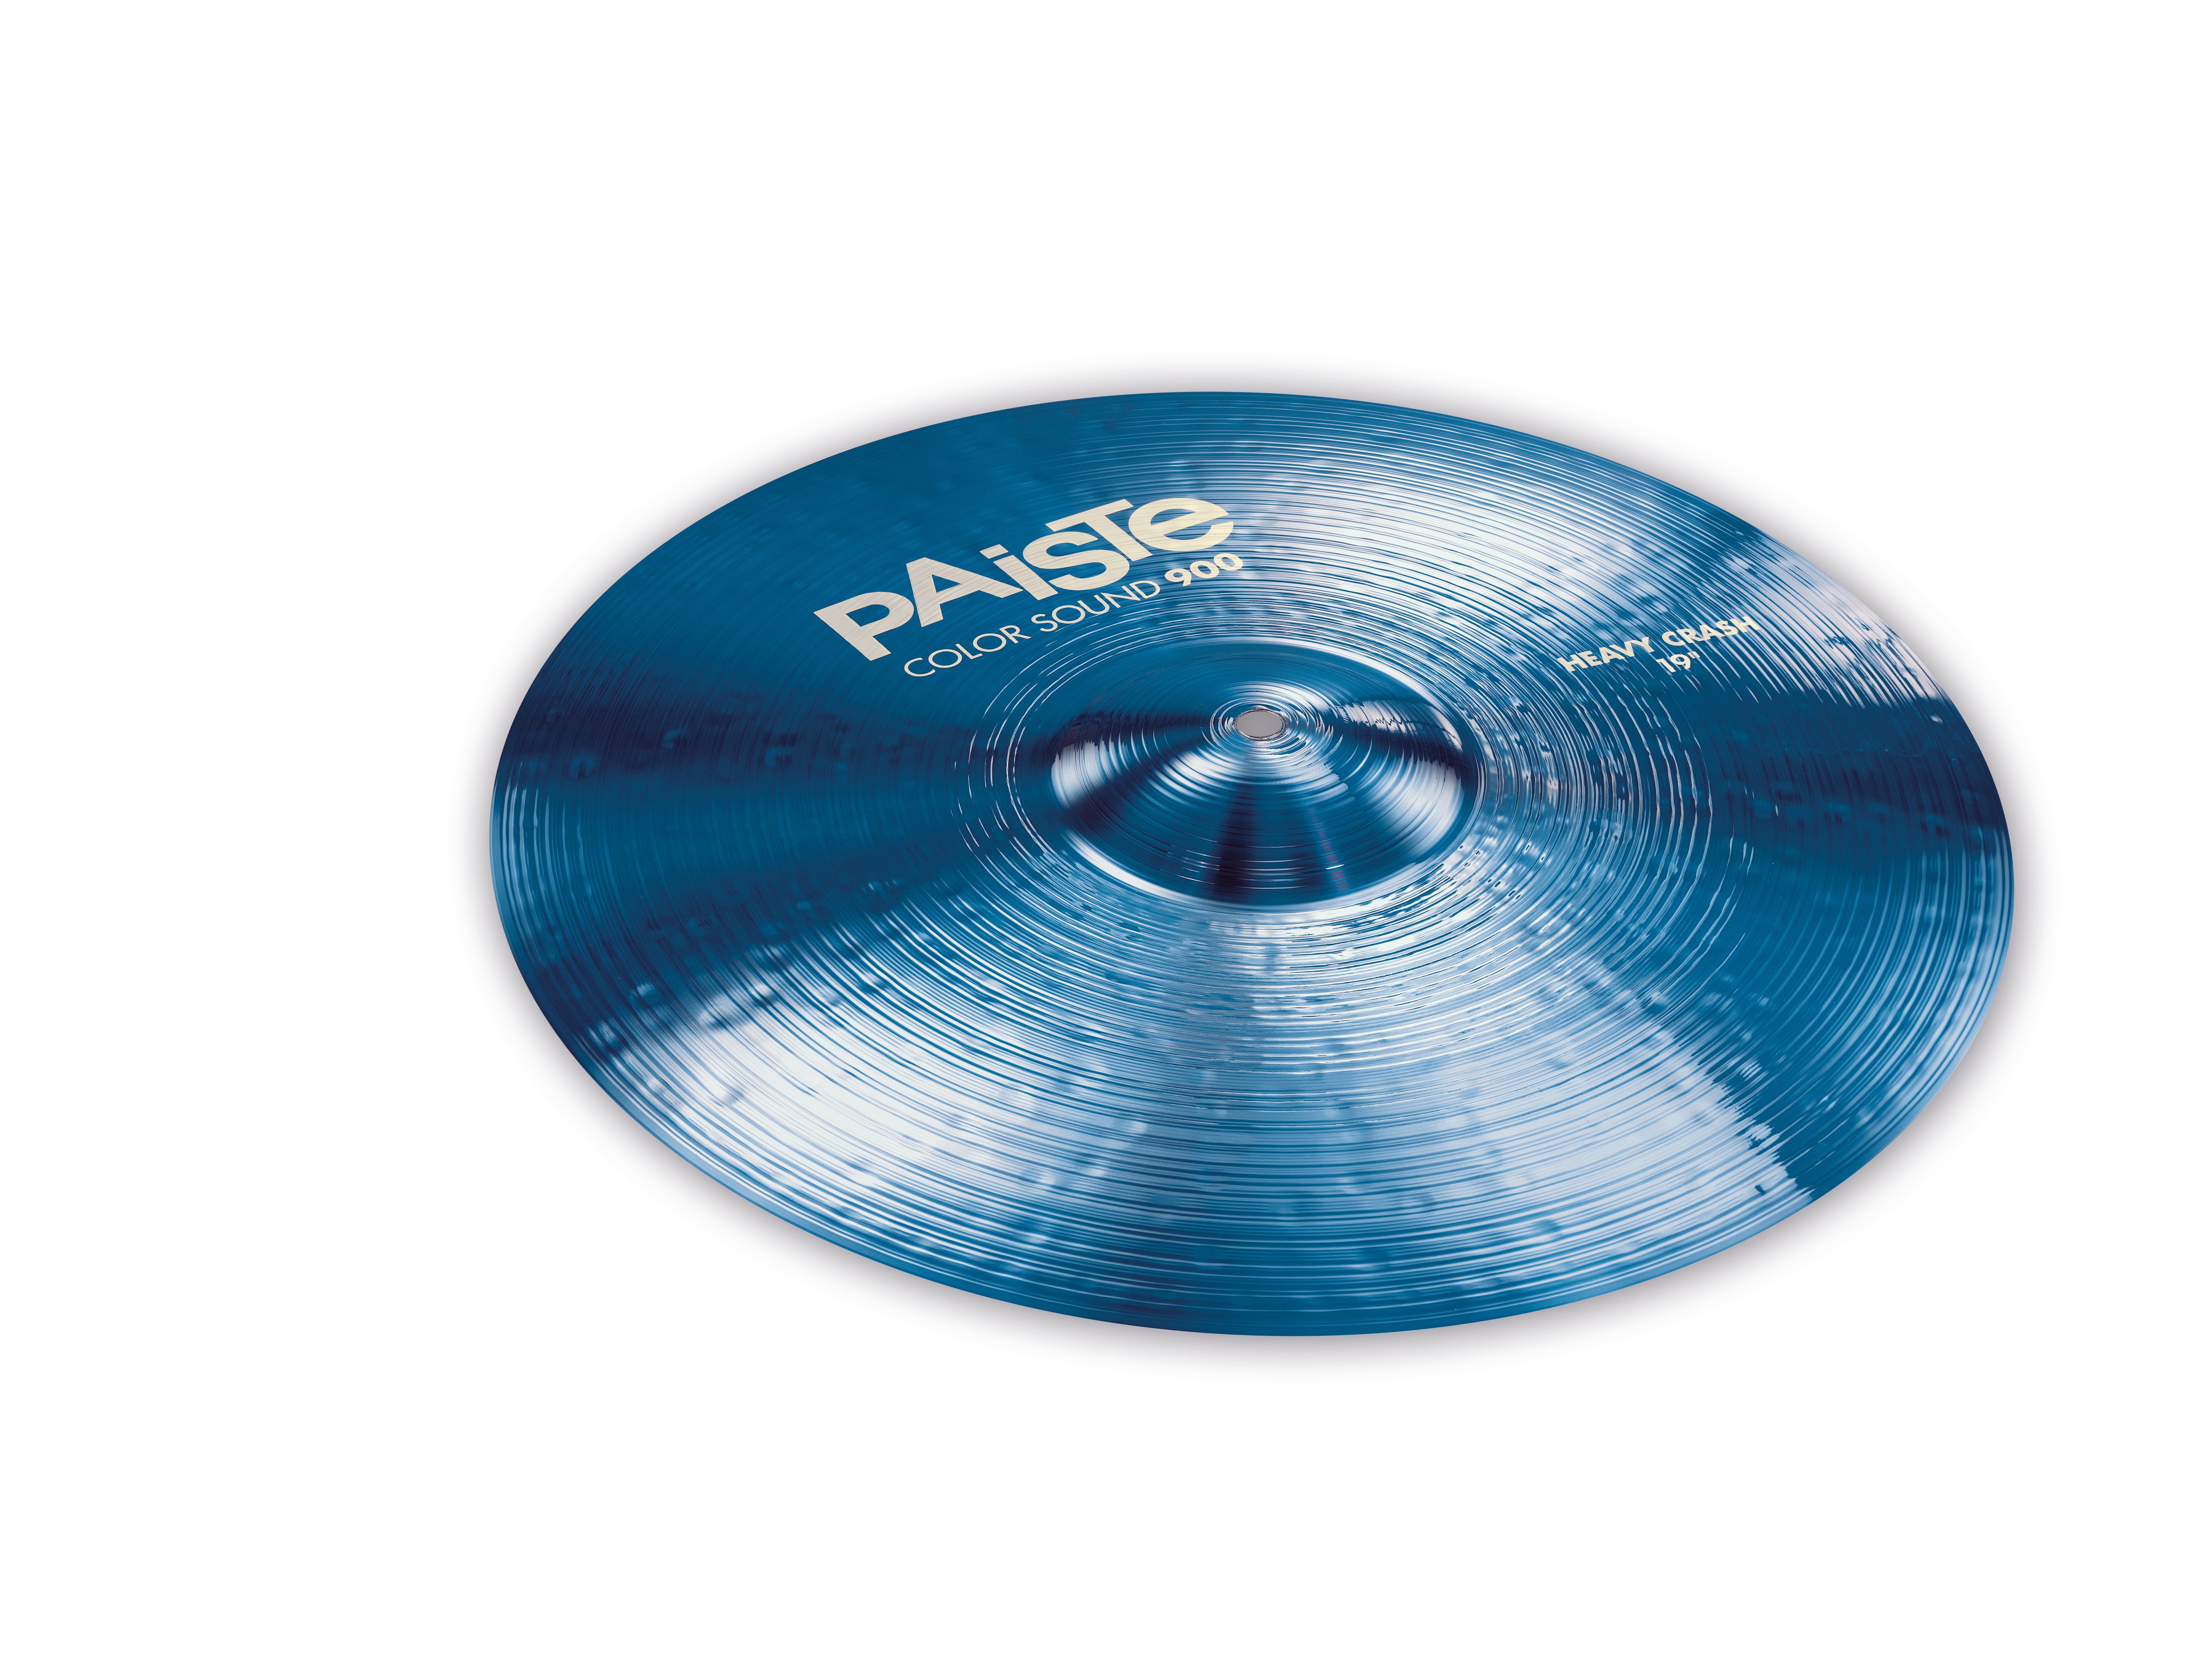 paiste 19 inch color sound 900 series blue heavy weight crash cymbal 1932819 ebay. Black Bedroom Furniture Sets. Home Design Ideas